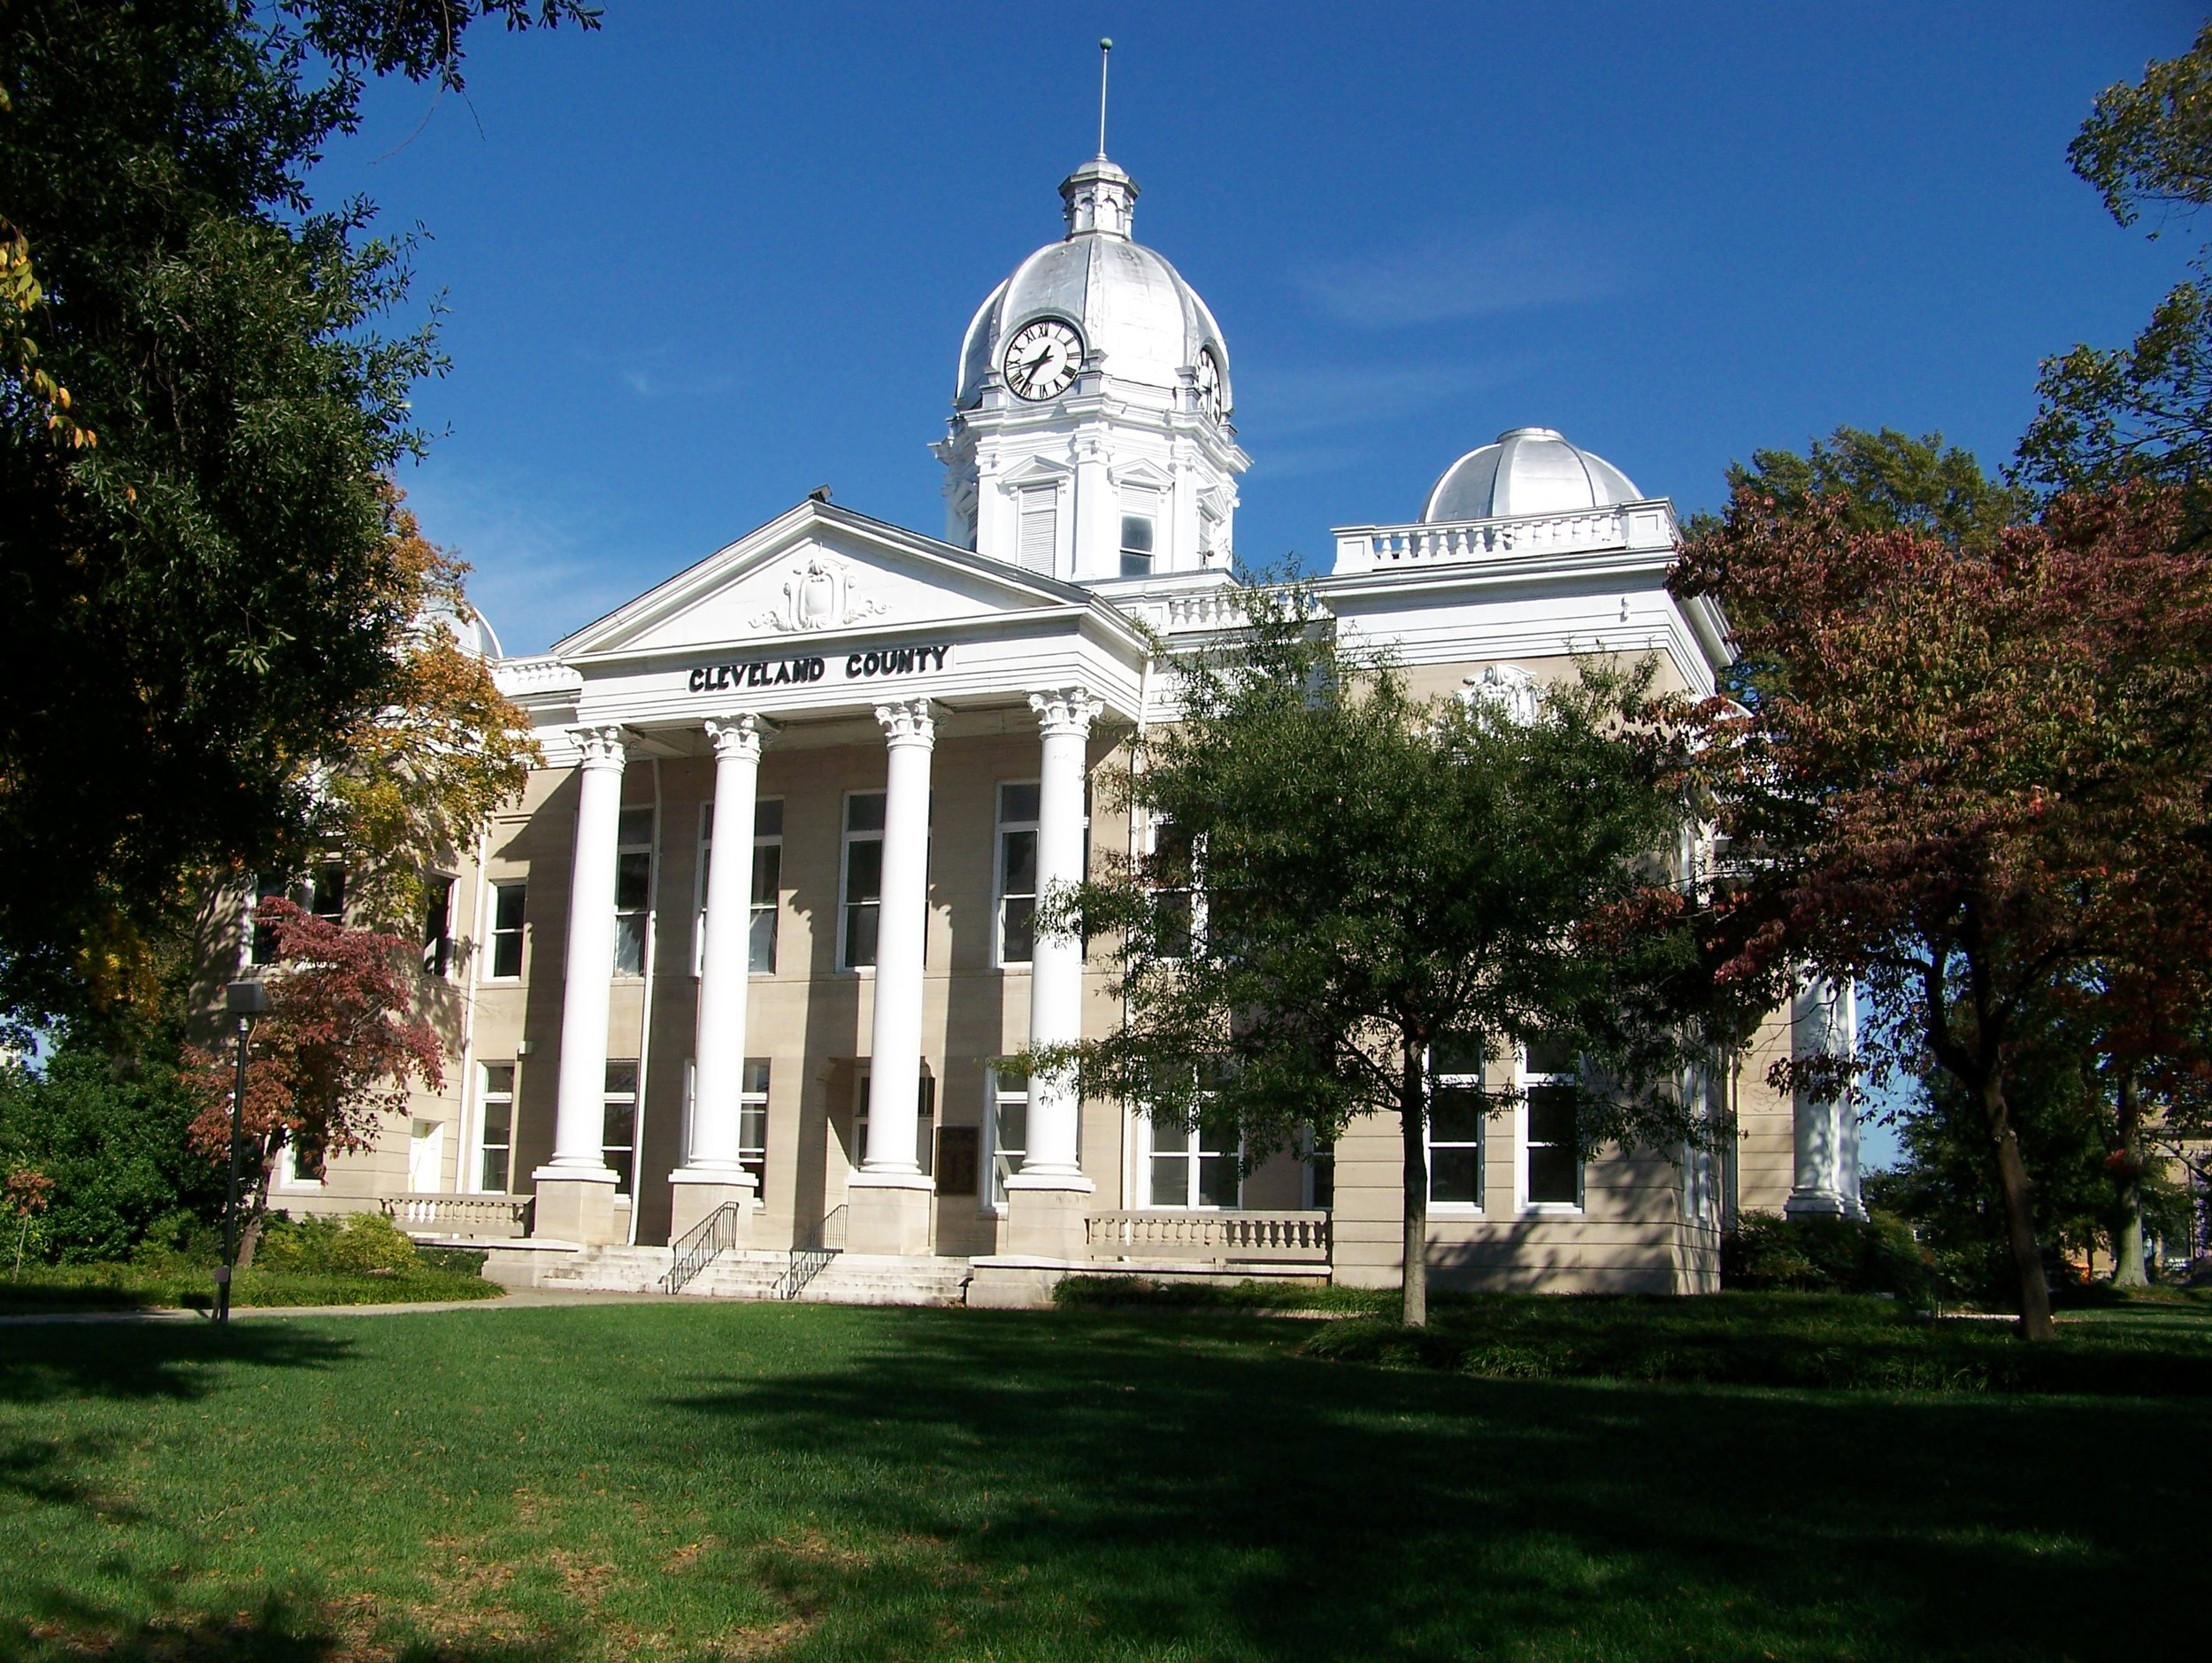 Scruggs_Center,_Formerly_the_Cleveland_County_Courthouse.jpg